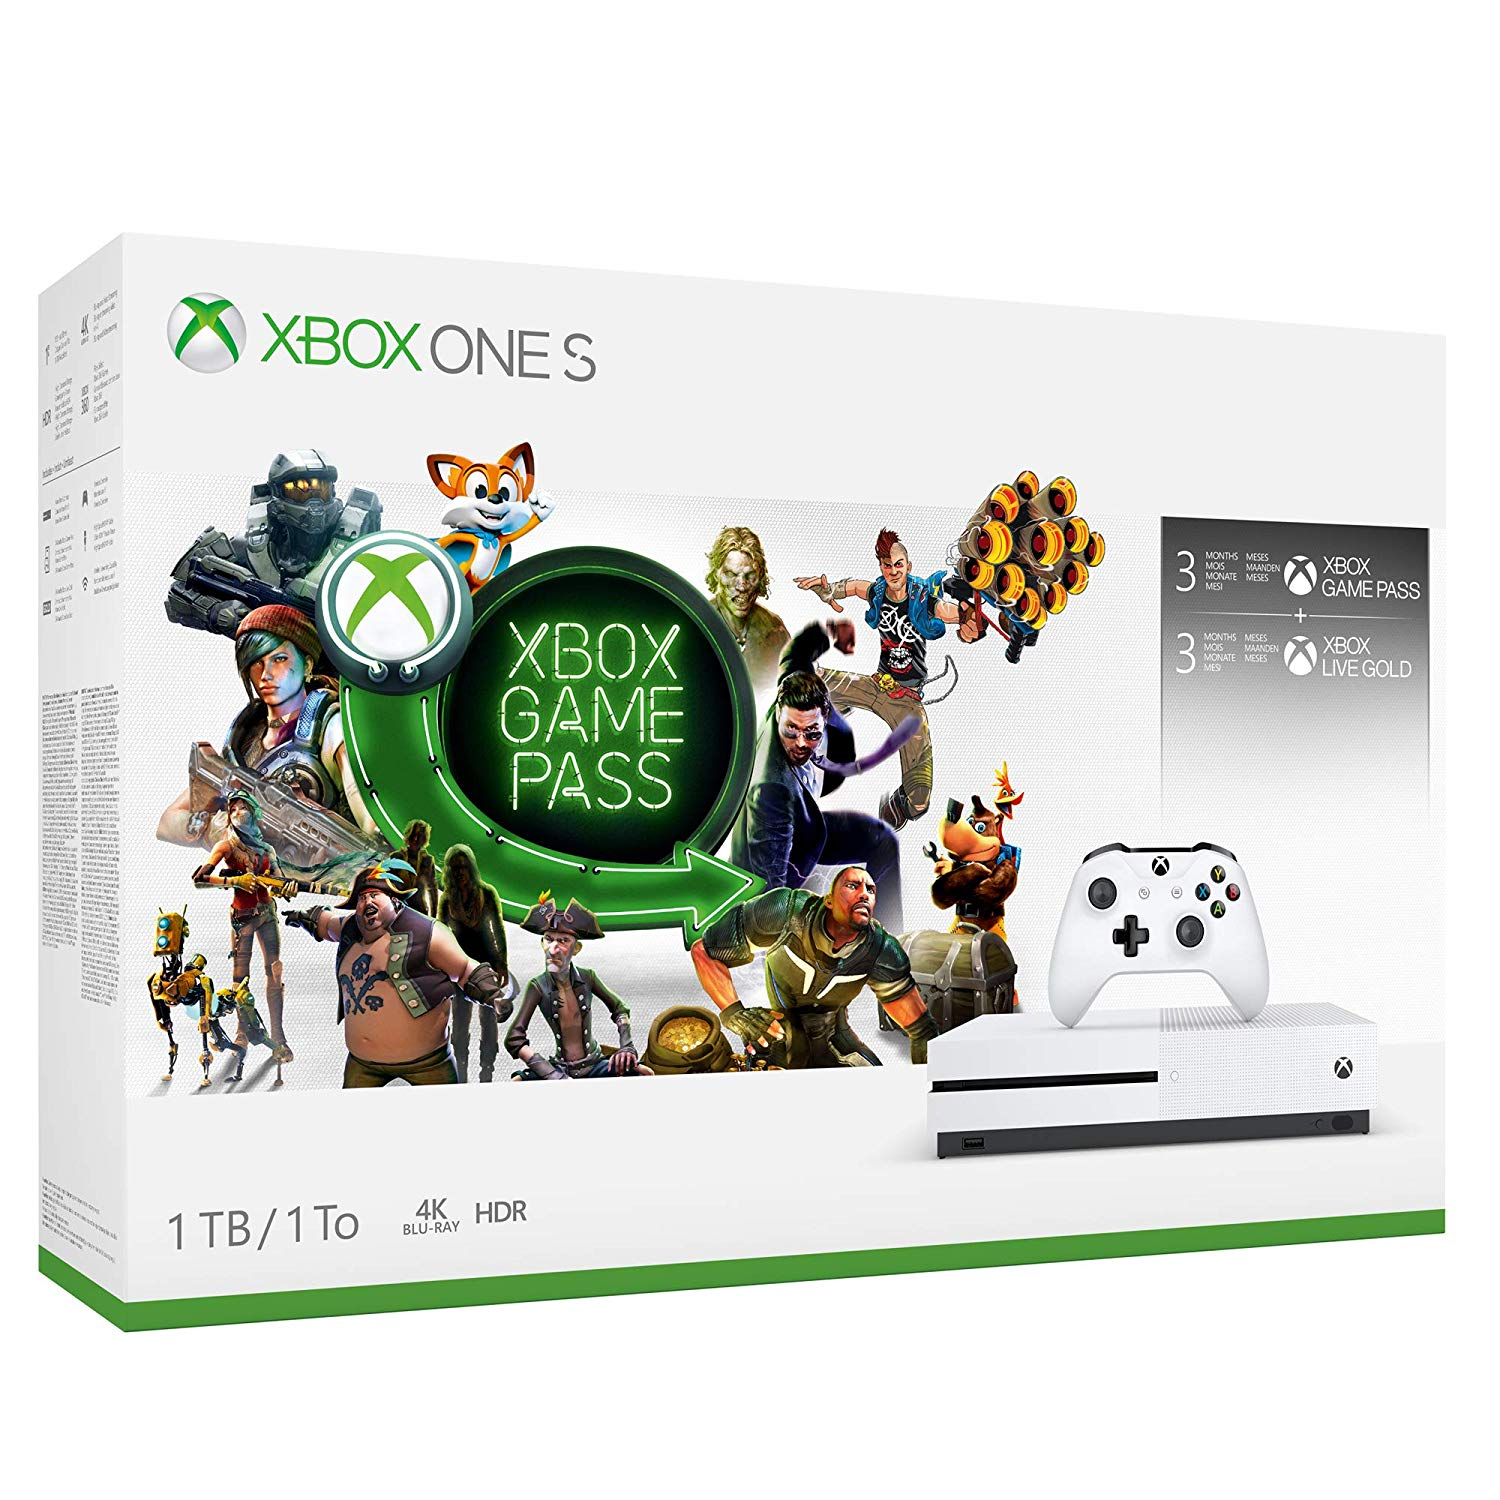 Xbox Live Gold 1 Mes Gratis Xbox One S 1tb 3 Meses Gamepass Y 3 Meses Xbox Live Gold